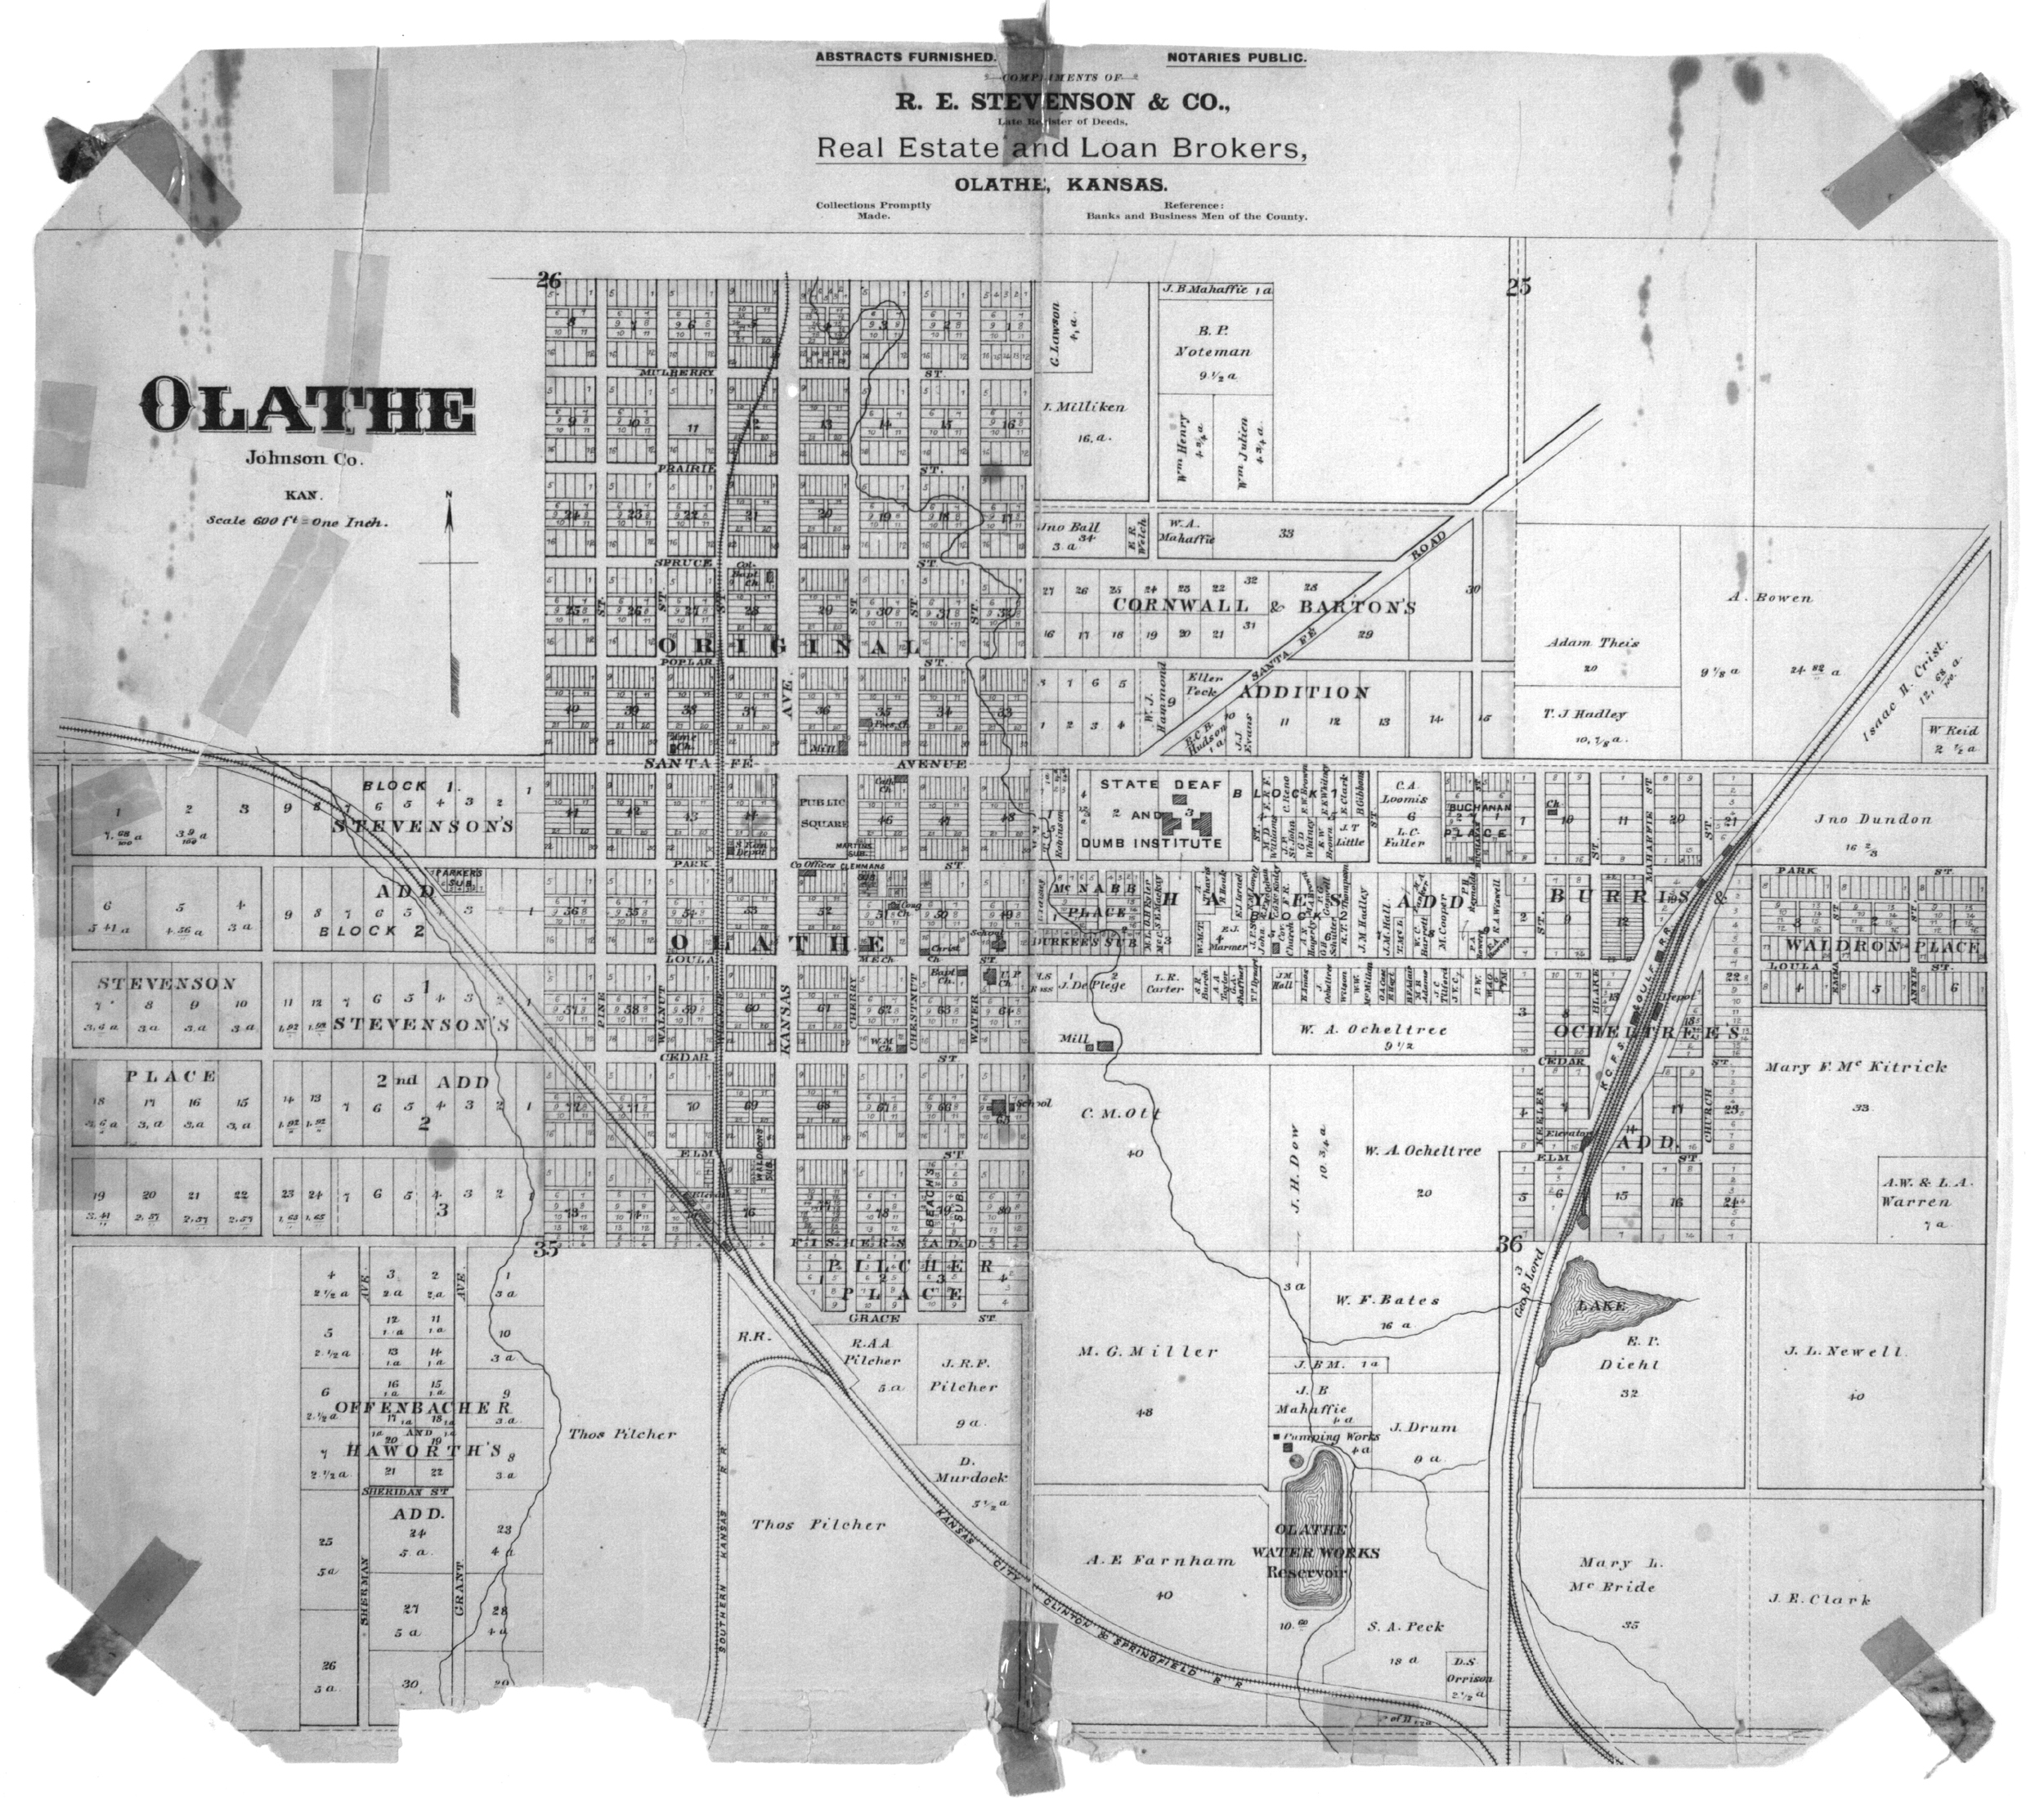 Standard atlas of Johnson County, Kansas - Map of Olathe insert